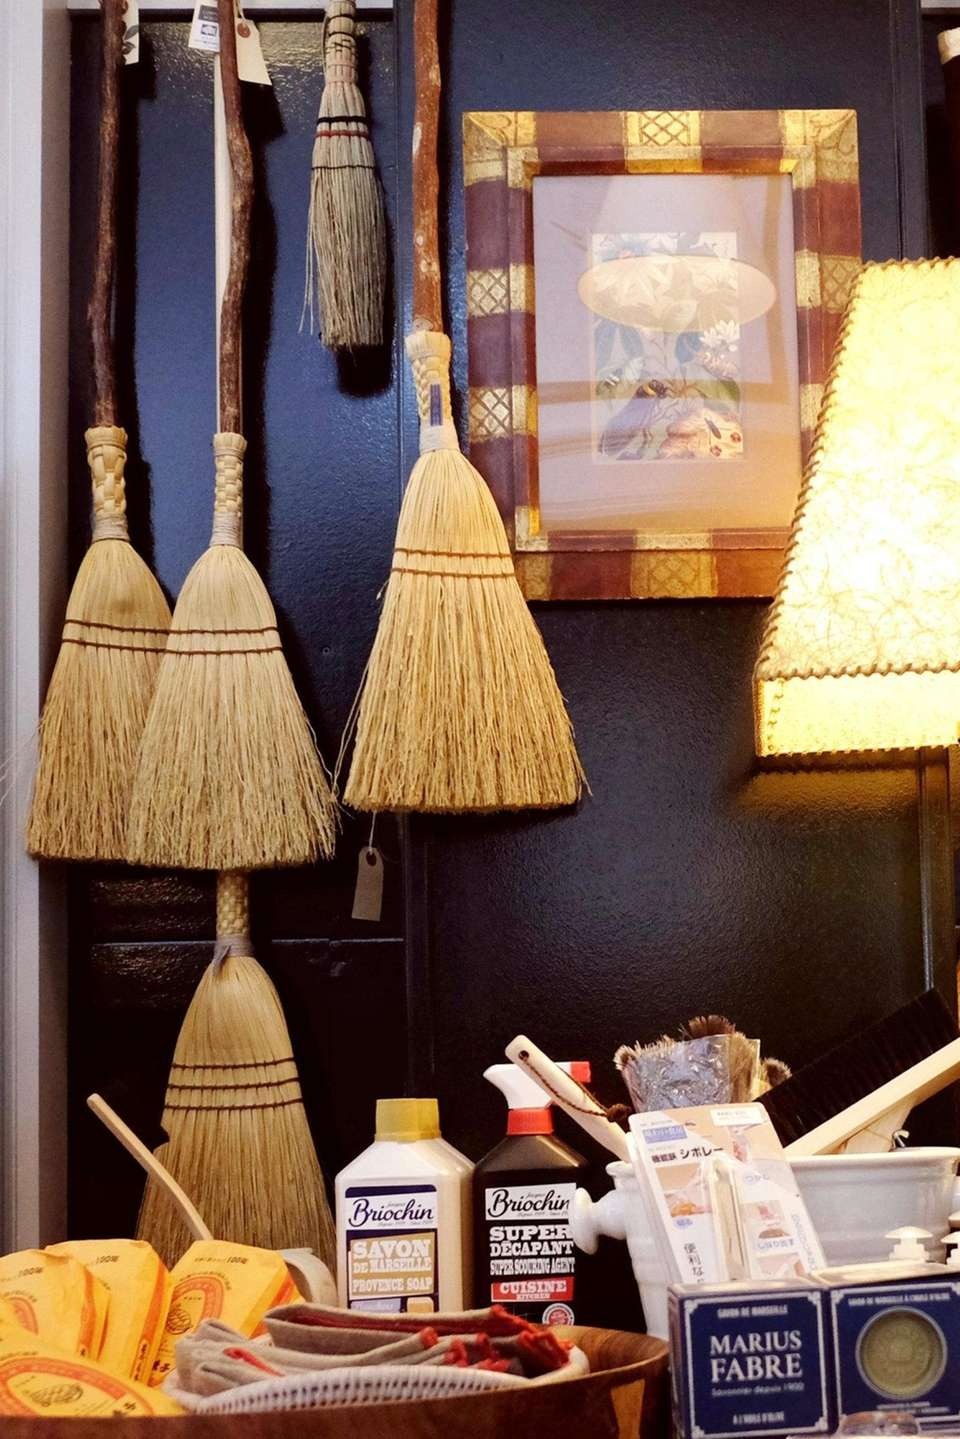 Cleaning supplies on sale at Copper Beech in